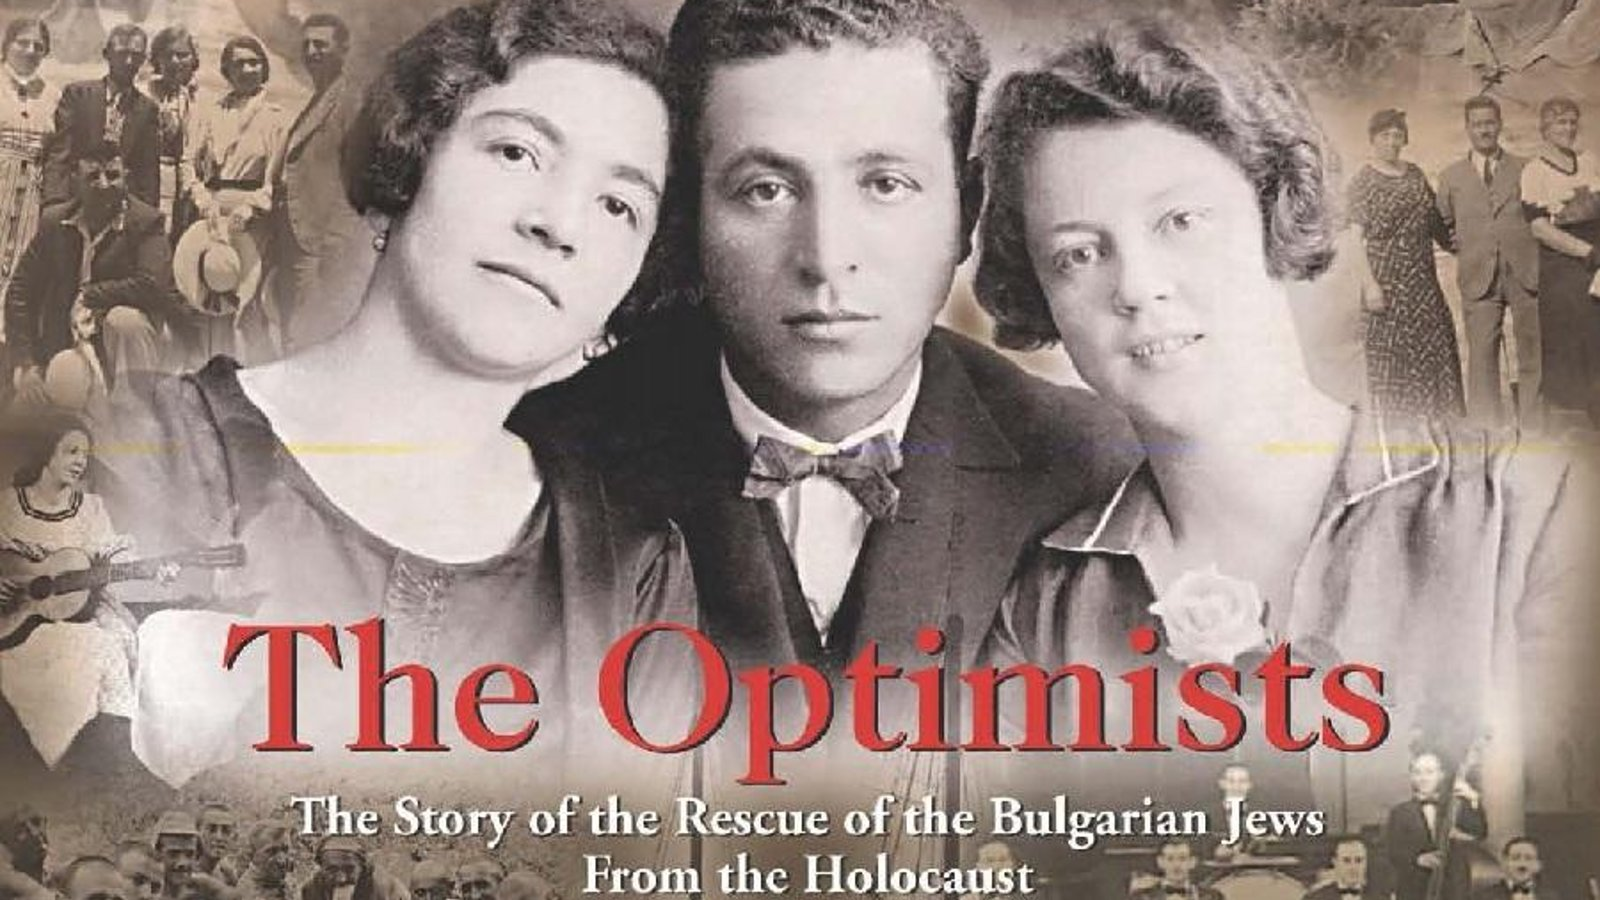 The Optimists - Bulgarian Jews Saved From the Holocaust